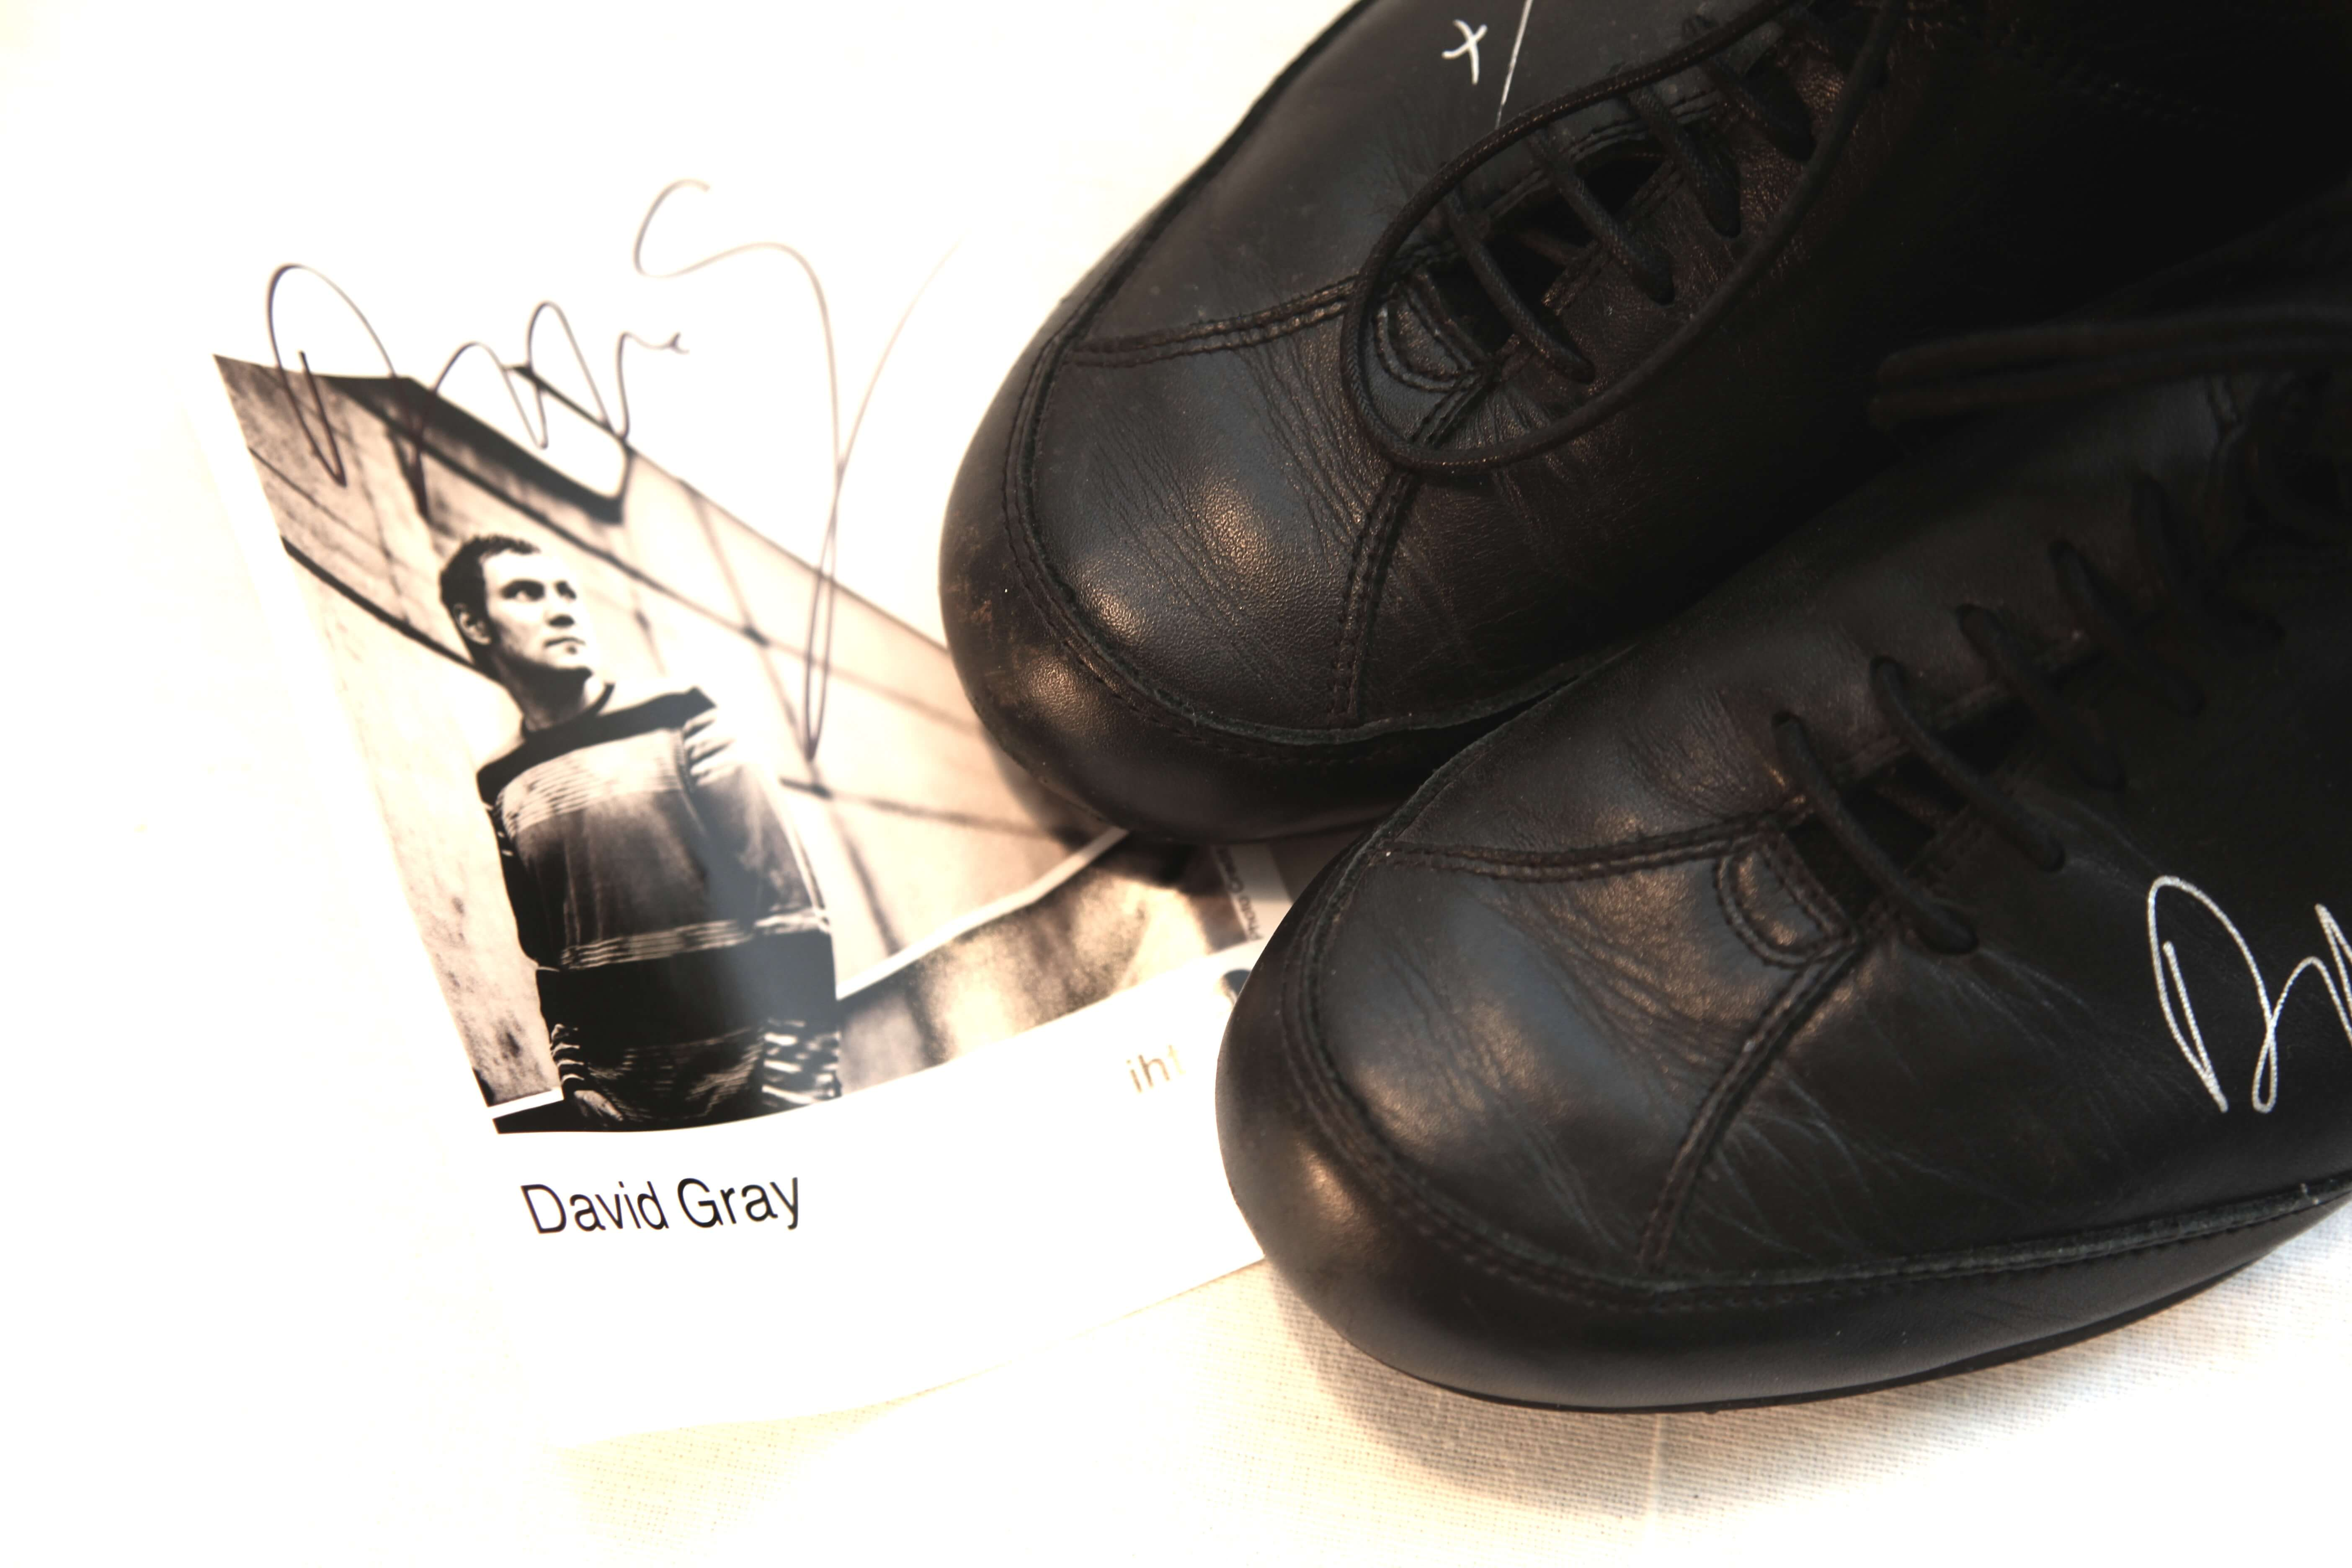 David's shoe donation and his signed autograph, which was also auctioned